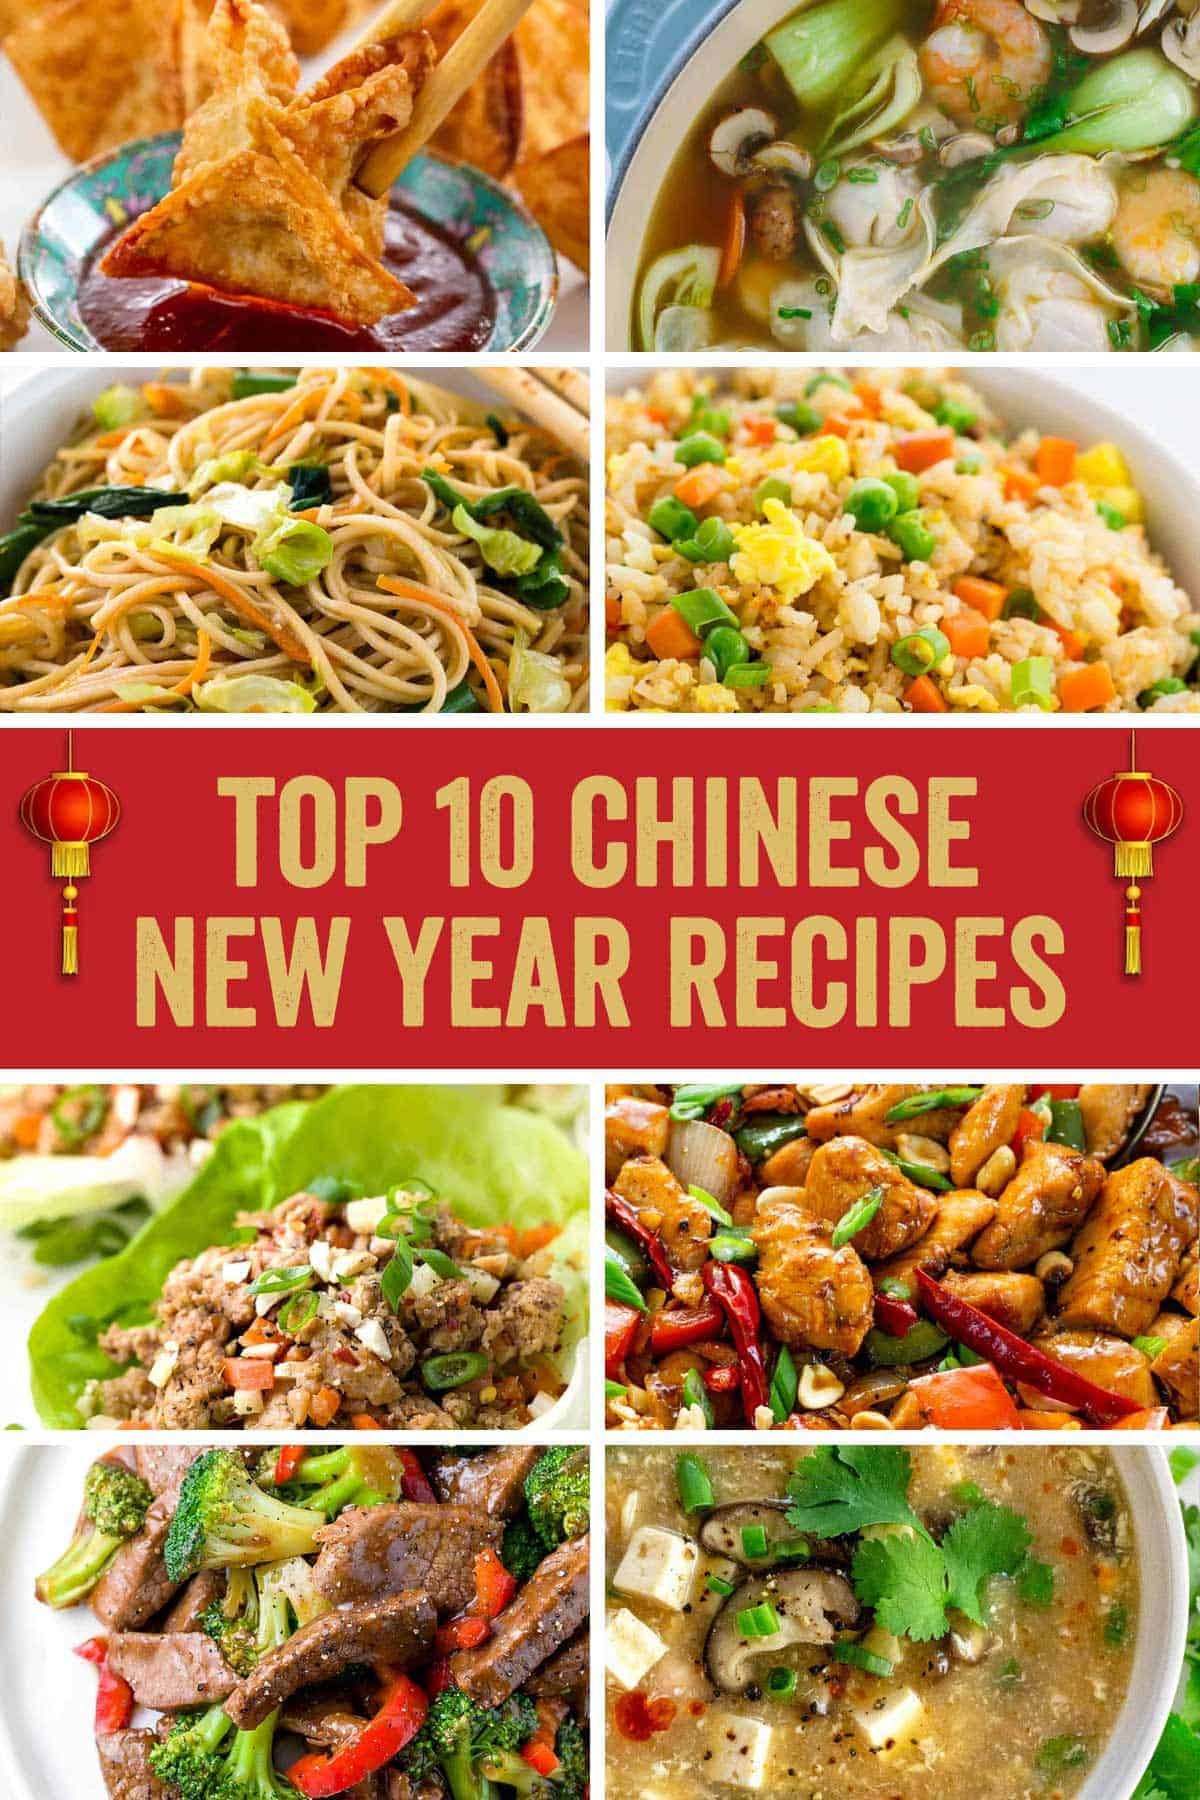 Celebrate the Chinese New Year with a master class in flavorful Asian cuisine! With each recipe, you'll learn how to use your wok (or pan) to recreate your favorite Chinese restaurant meals. #chinesefood #chineserecipes #chinesenewyear